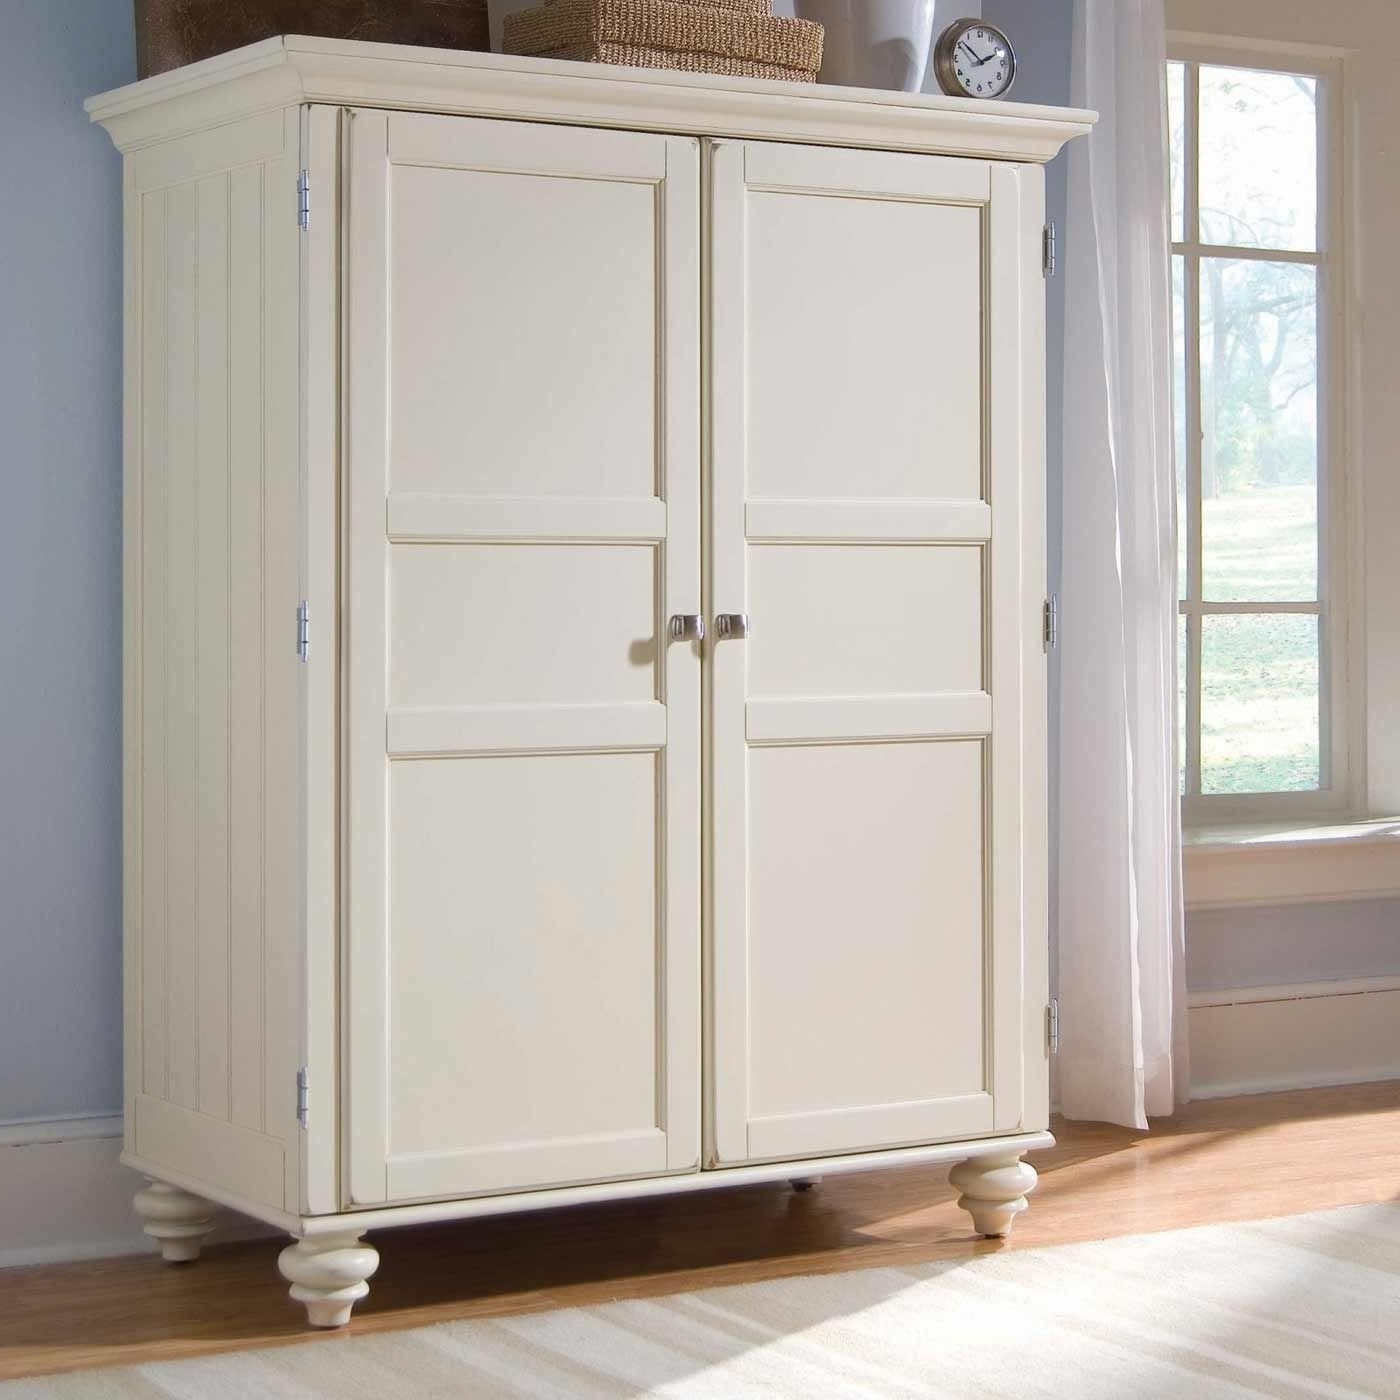 Most Inspiring Amazing Ideas Clothing Armoire Furniture Wardrobe Regarding Preferred White Wardrobes Armoire (View 9 of 15)